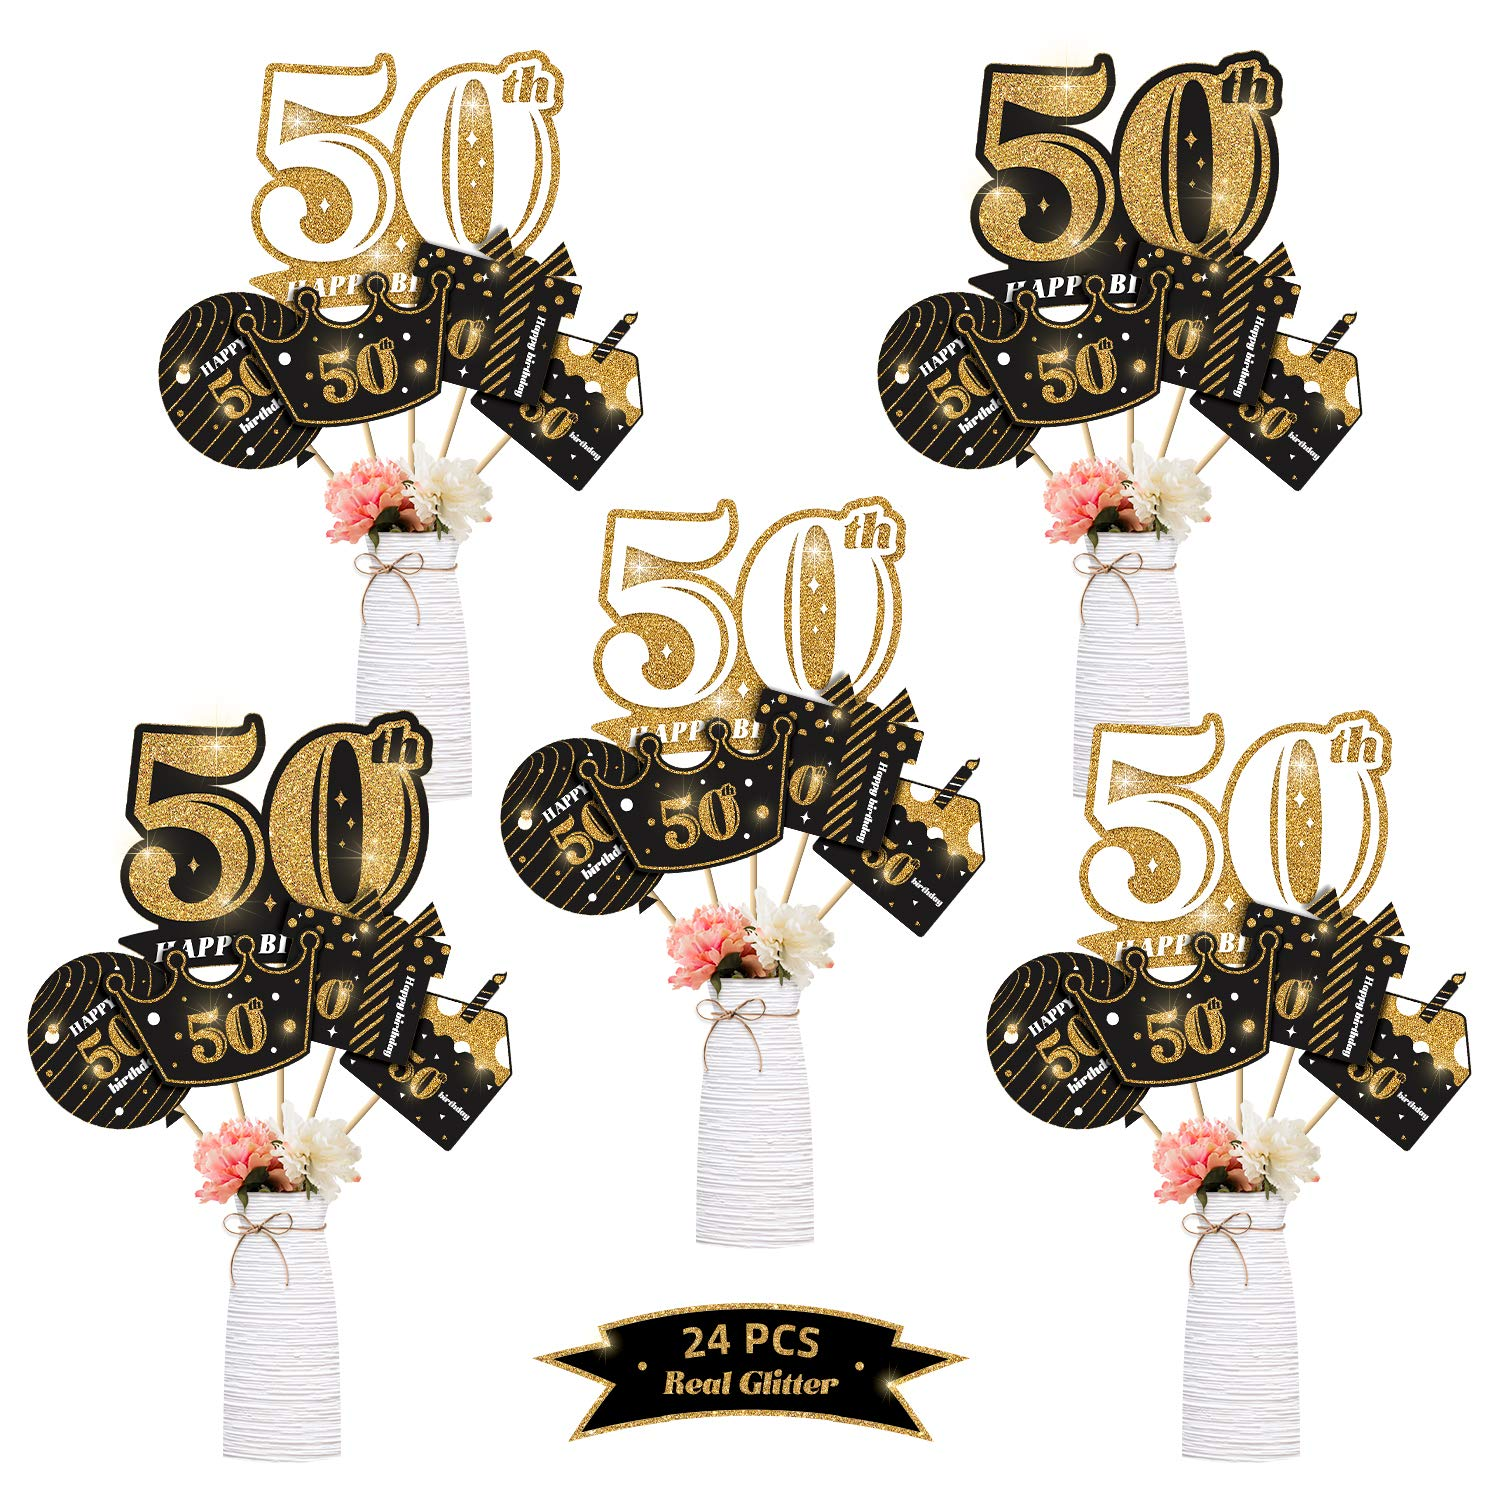 kortes 24Pack 50th Birthday Party Centerpiece Stickers (Real Glitter) Birthday Table Toppers Party Photo Booth Props, 50th Birthday Party Decoration Set